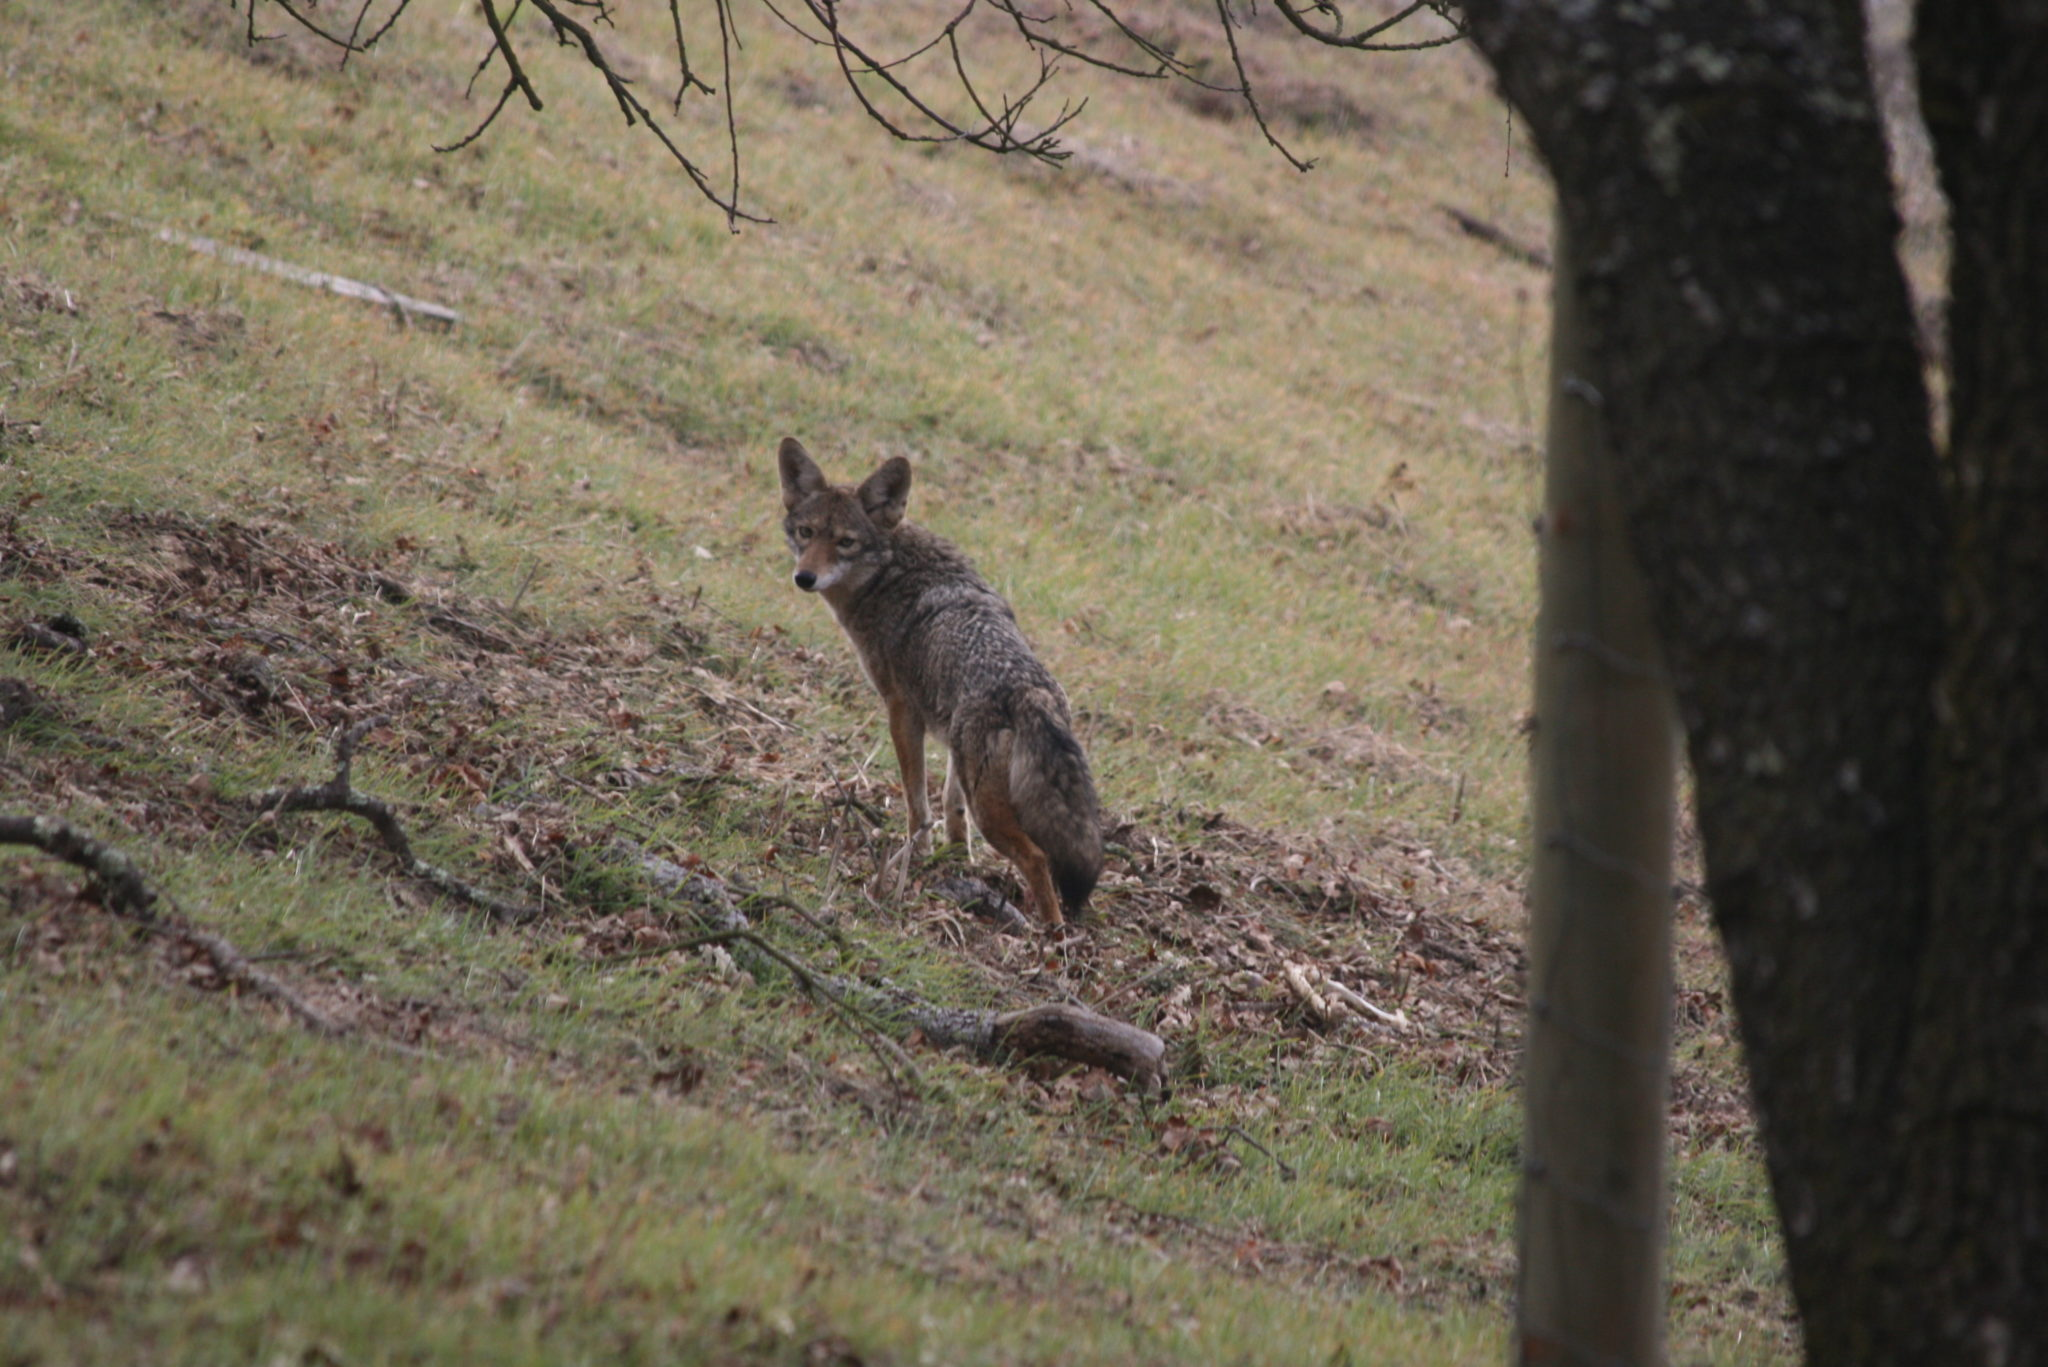 How To Humanely Keep Coyotes Away From Your Homestead